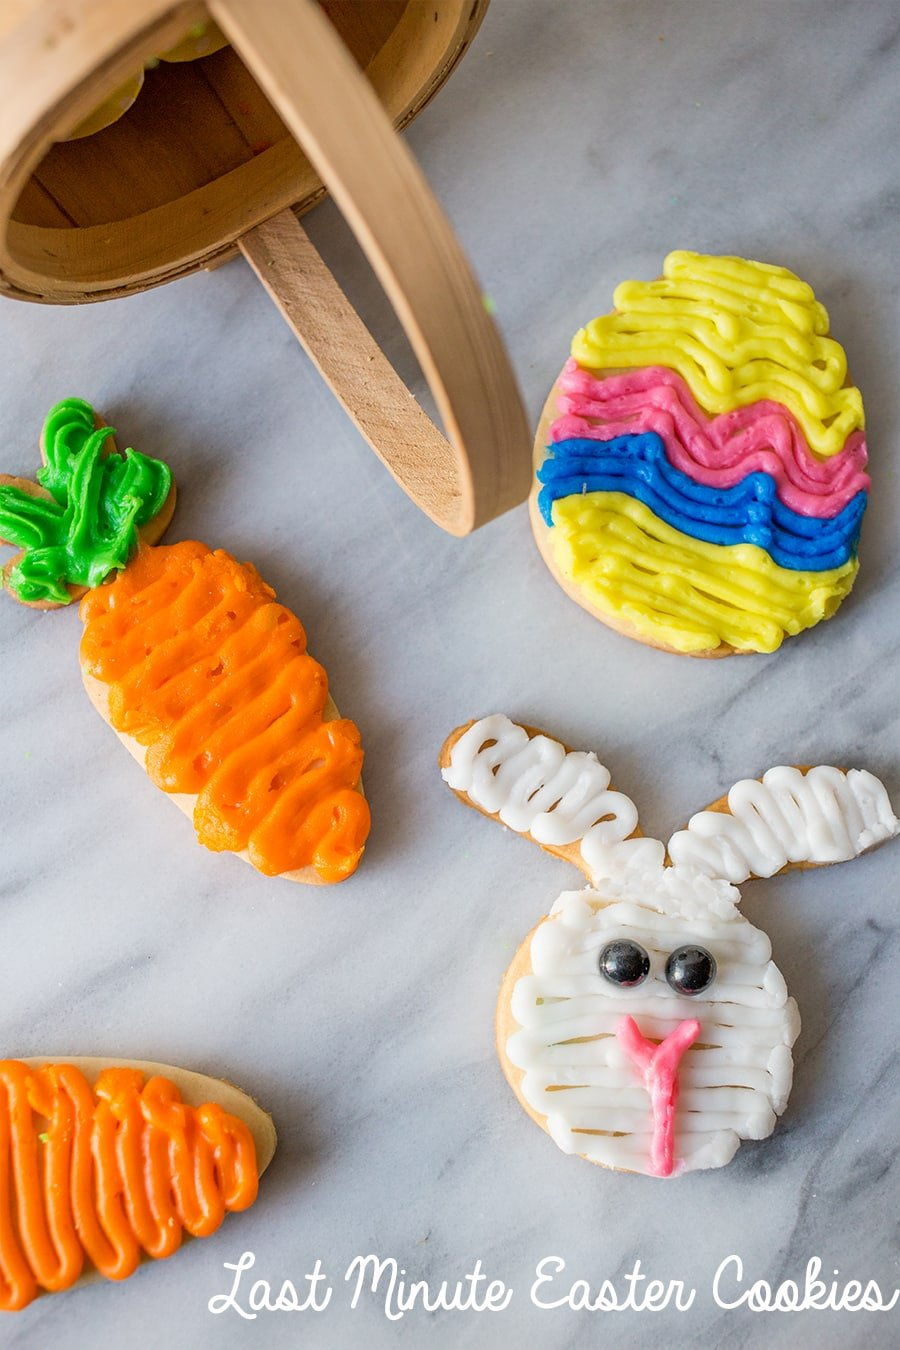 Delicious and easy last minute Easter sugar cookies - these are so good!